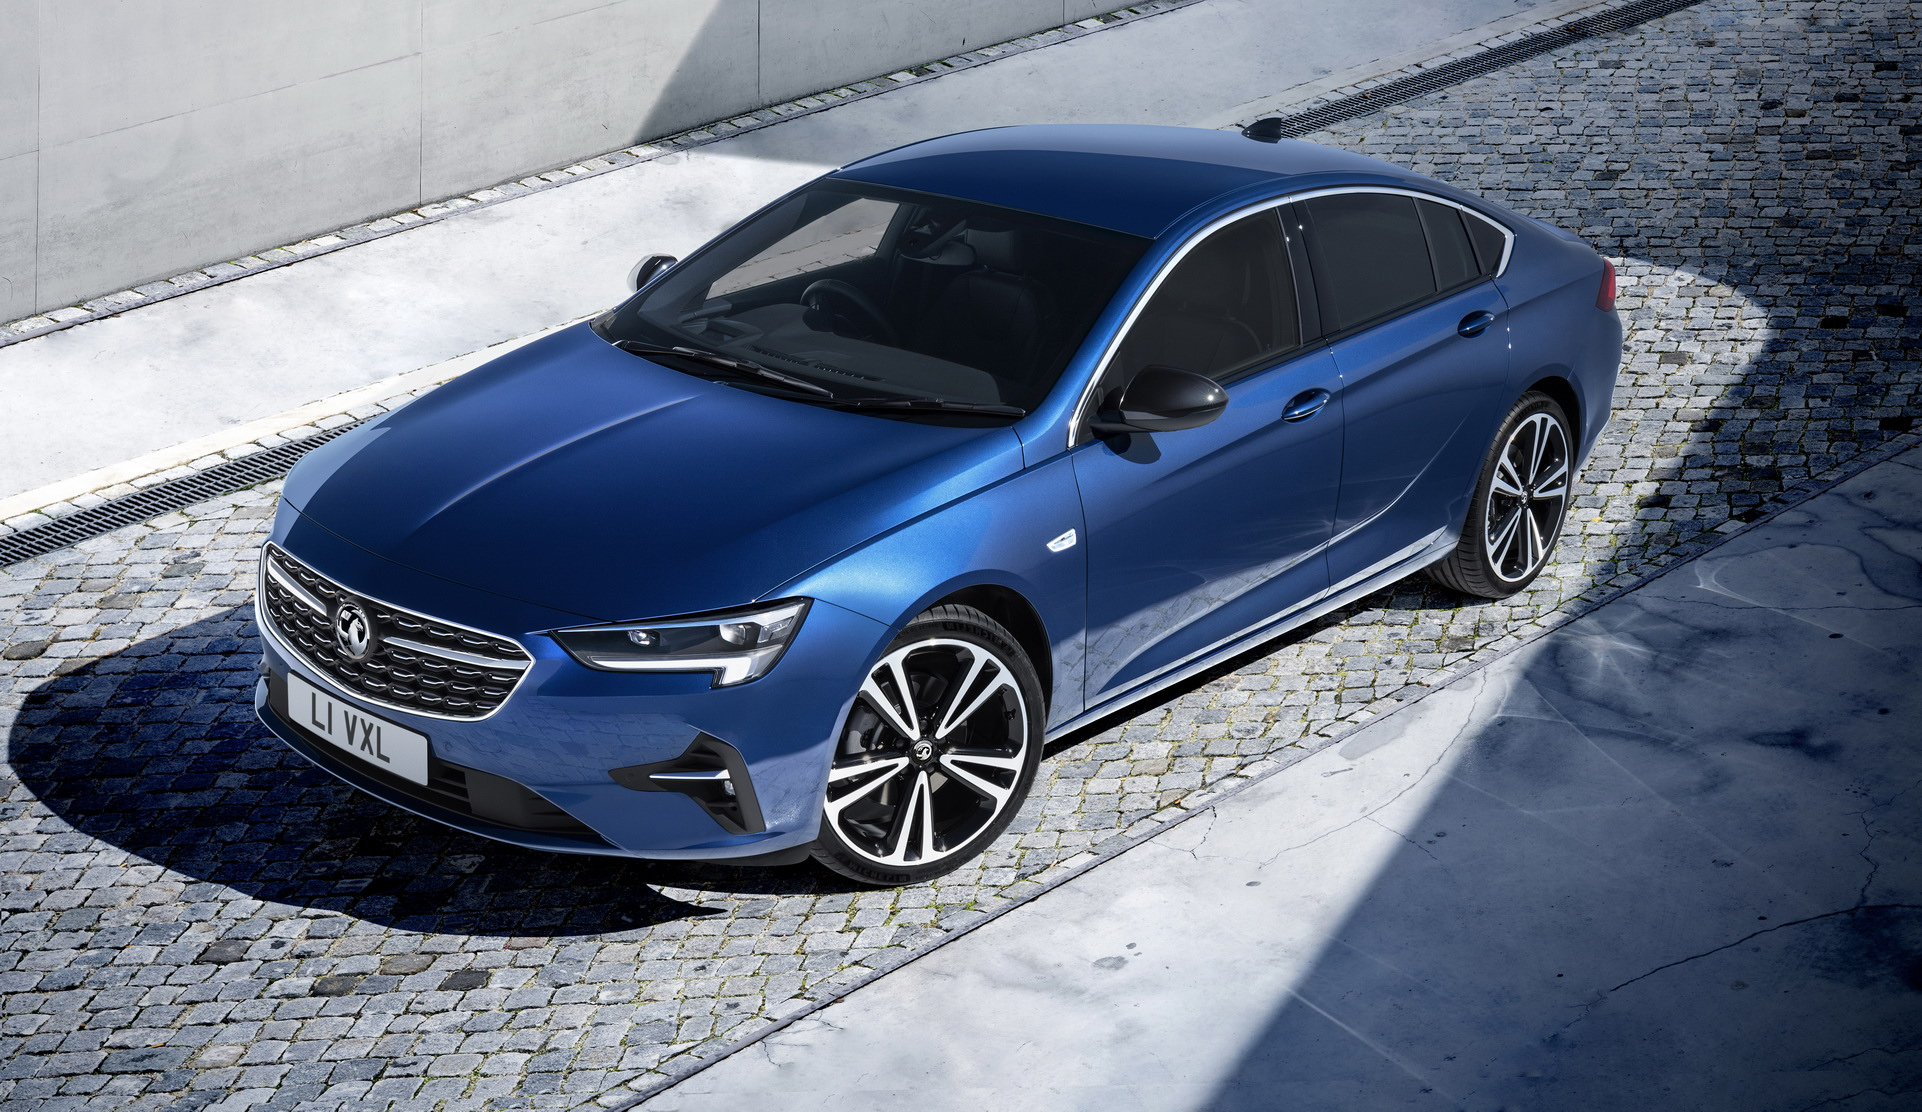 2020 Opel And Vauxhall Insignia Revealed With Minor Styling